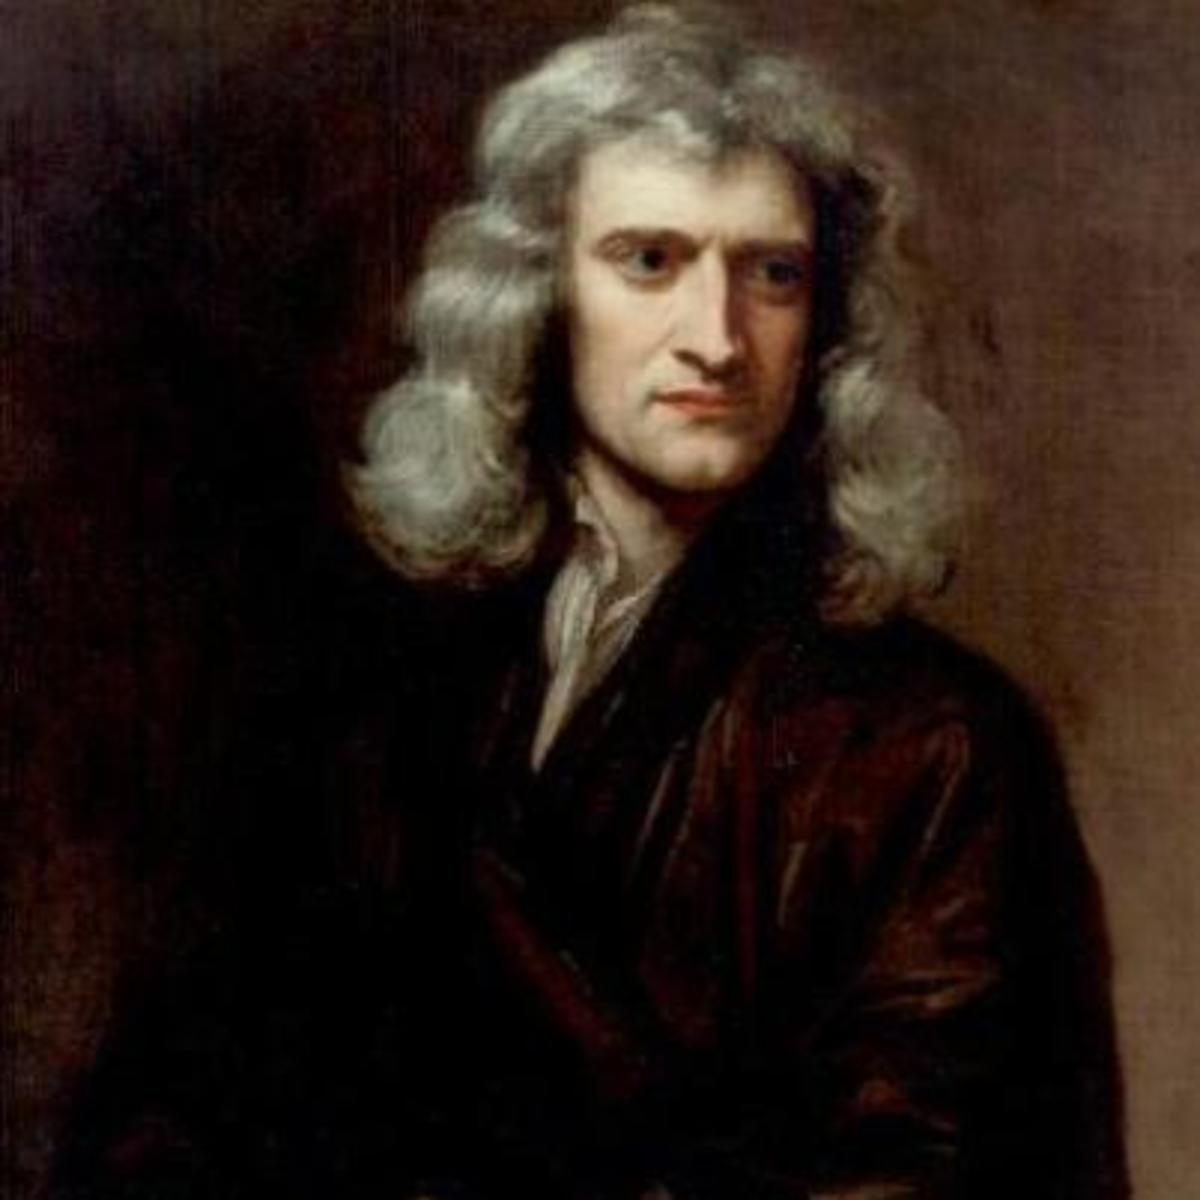 isaac newton philosopher astronomer physicist scientist isaac newton philosopher astronomer physicist scientist mathematician com